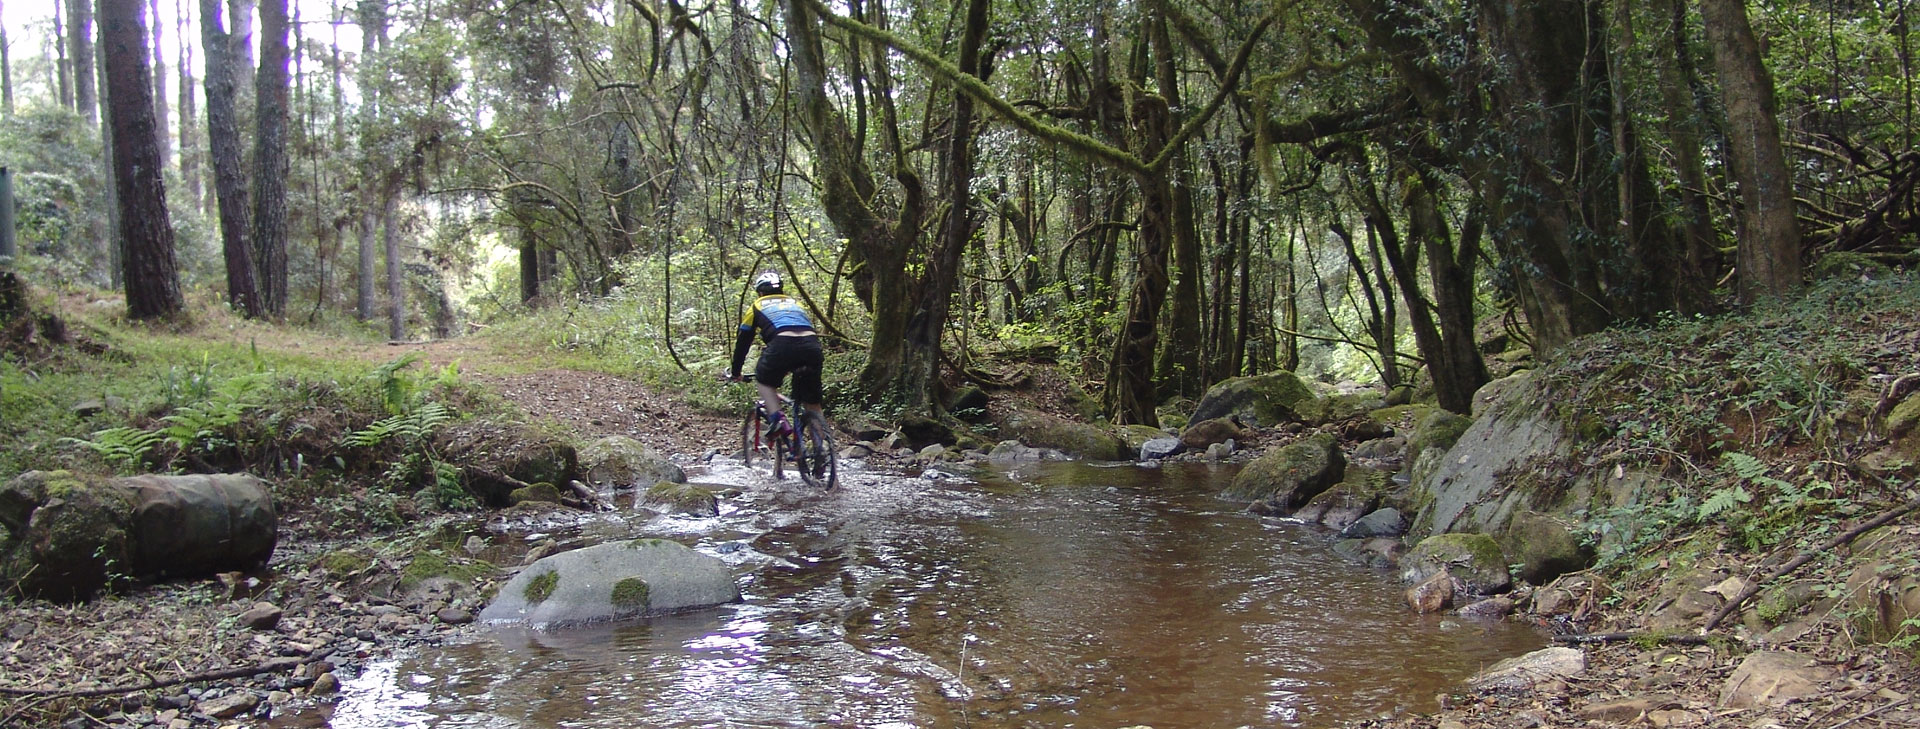 Magoebaskloof hosts various mountain biking events every year and has various biking trails marked by the Magoebaskloof Tourism Association.